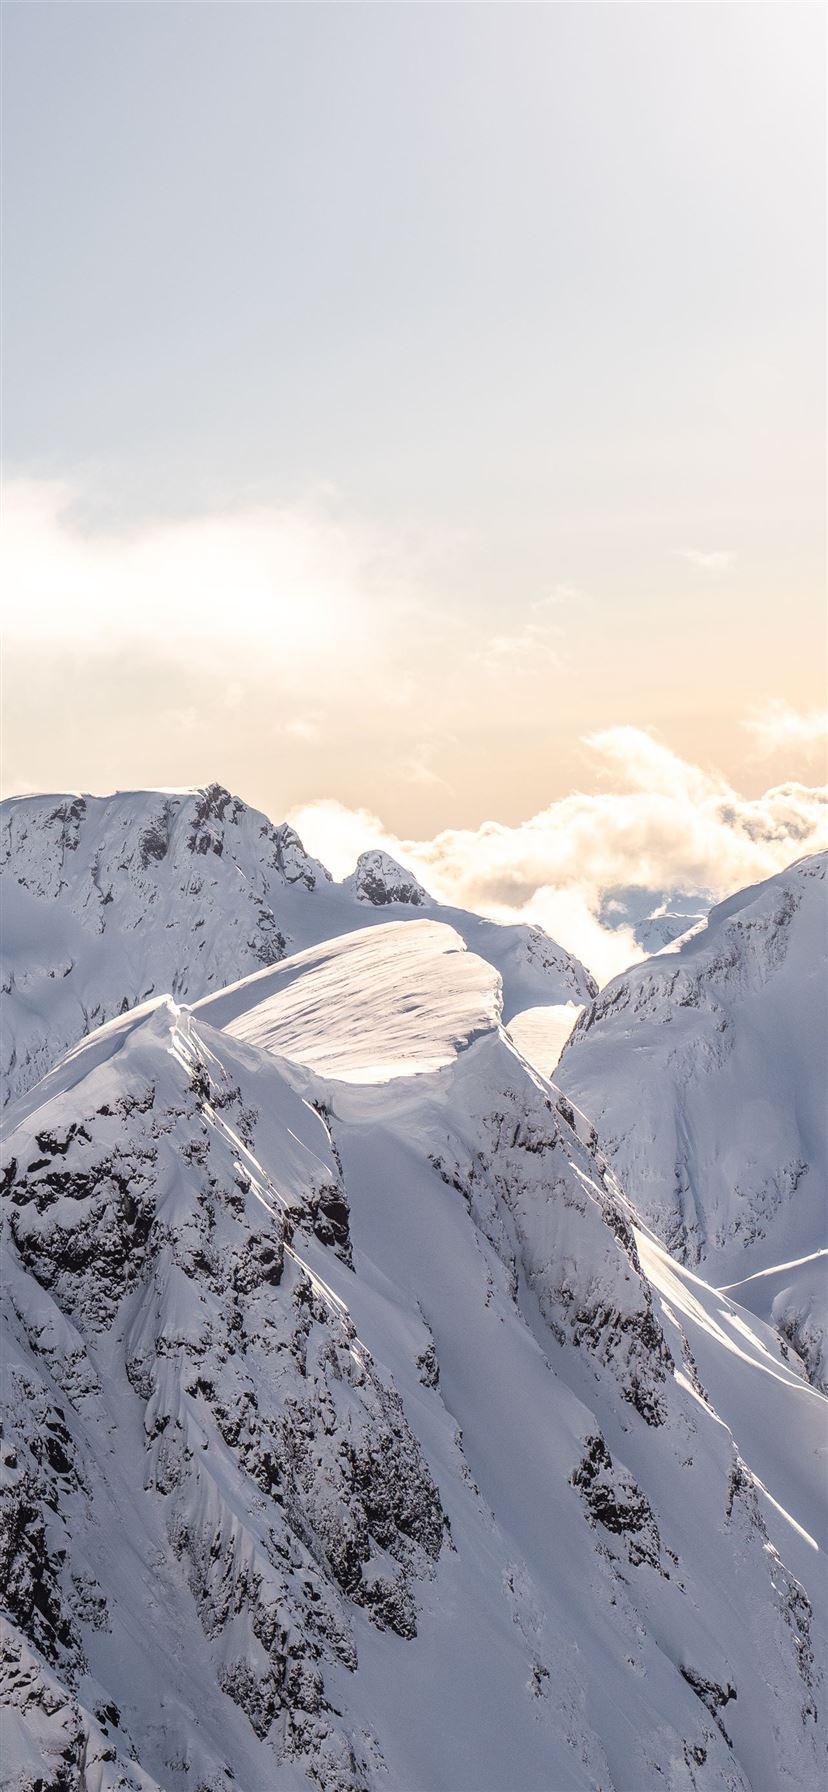 Mountains Covered By Snow At Daytime Iphone 11 Wallpapers